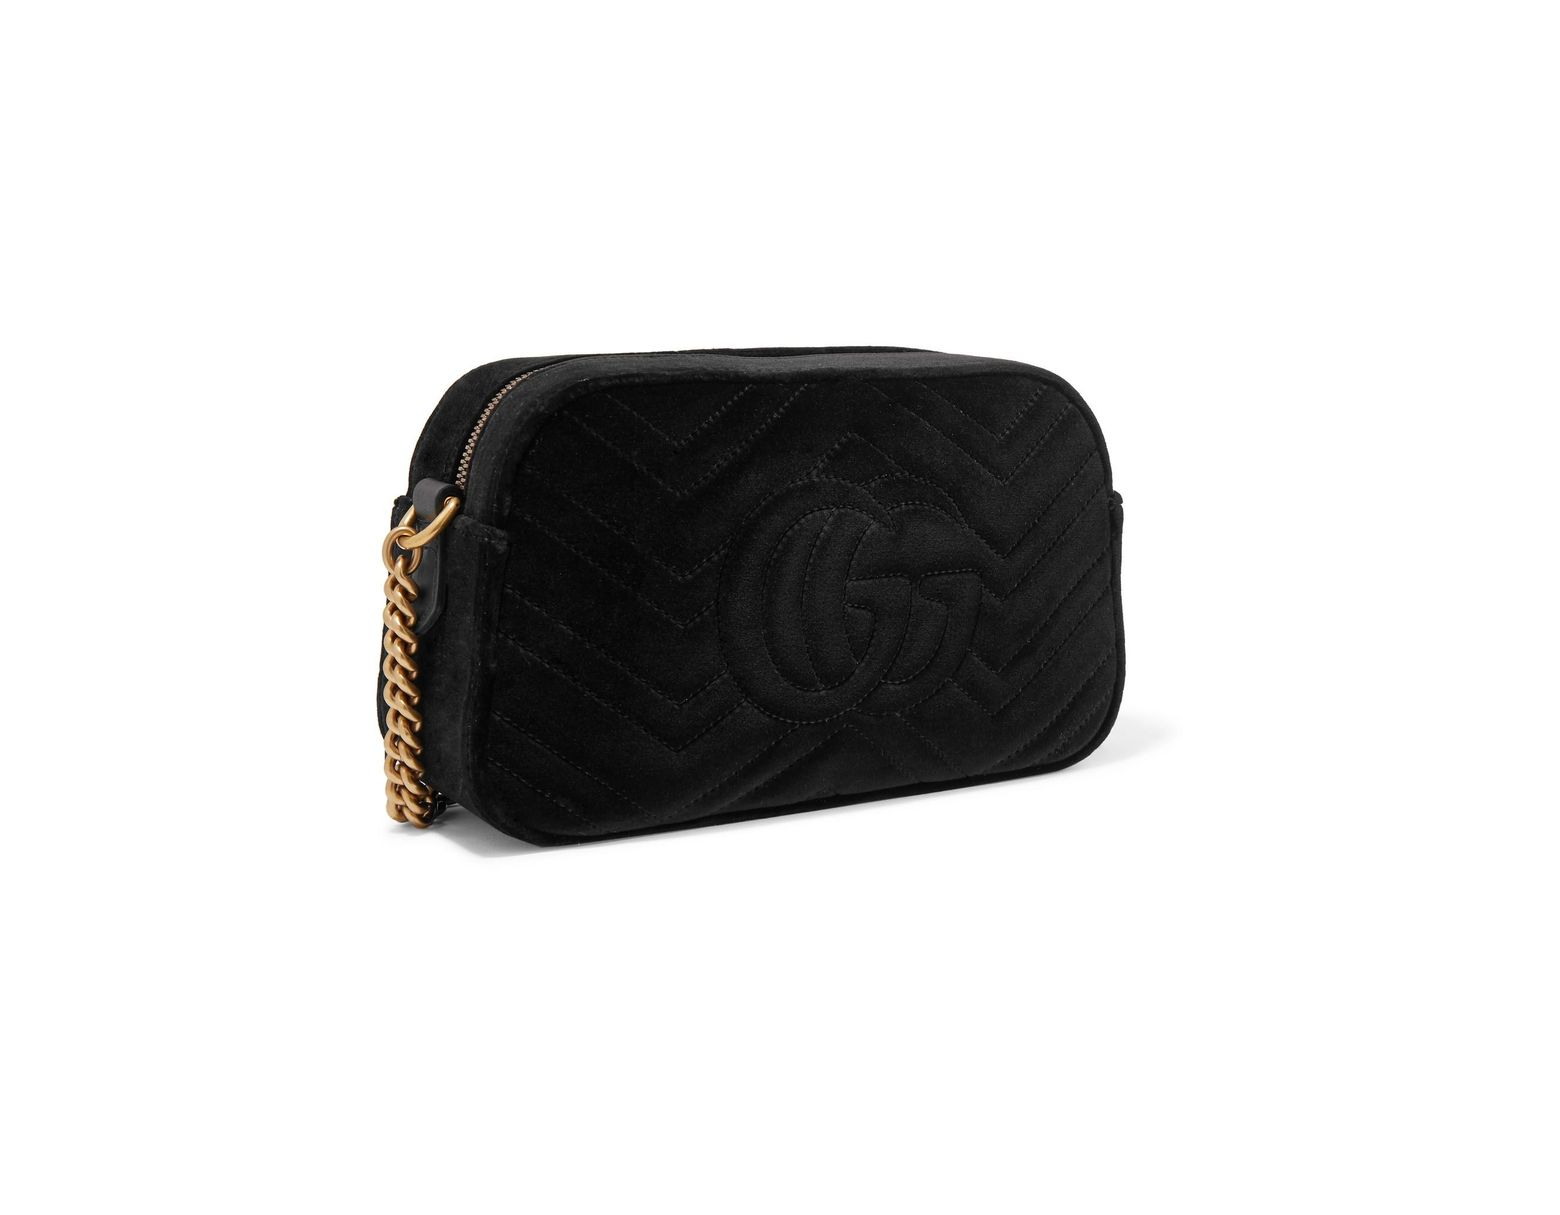 0b9247ab707 Lyst - Gucci Gg Marmont Small Leather-trimmed Quilted Velvet Shoulder Bag  in Black